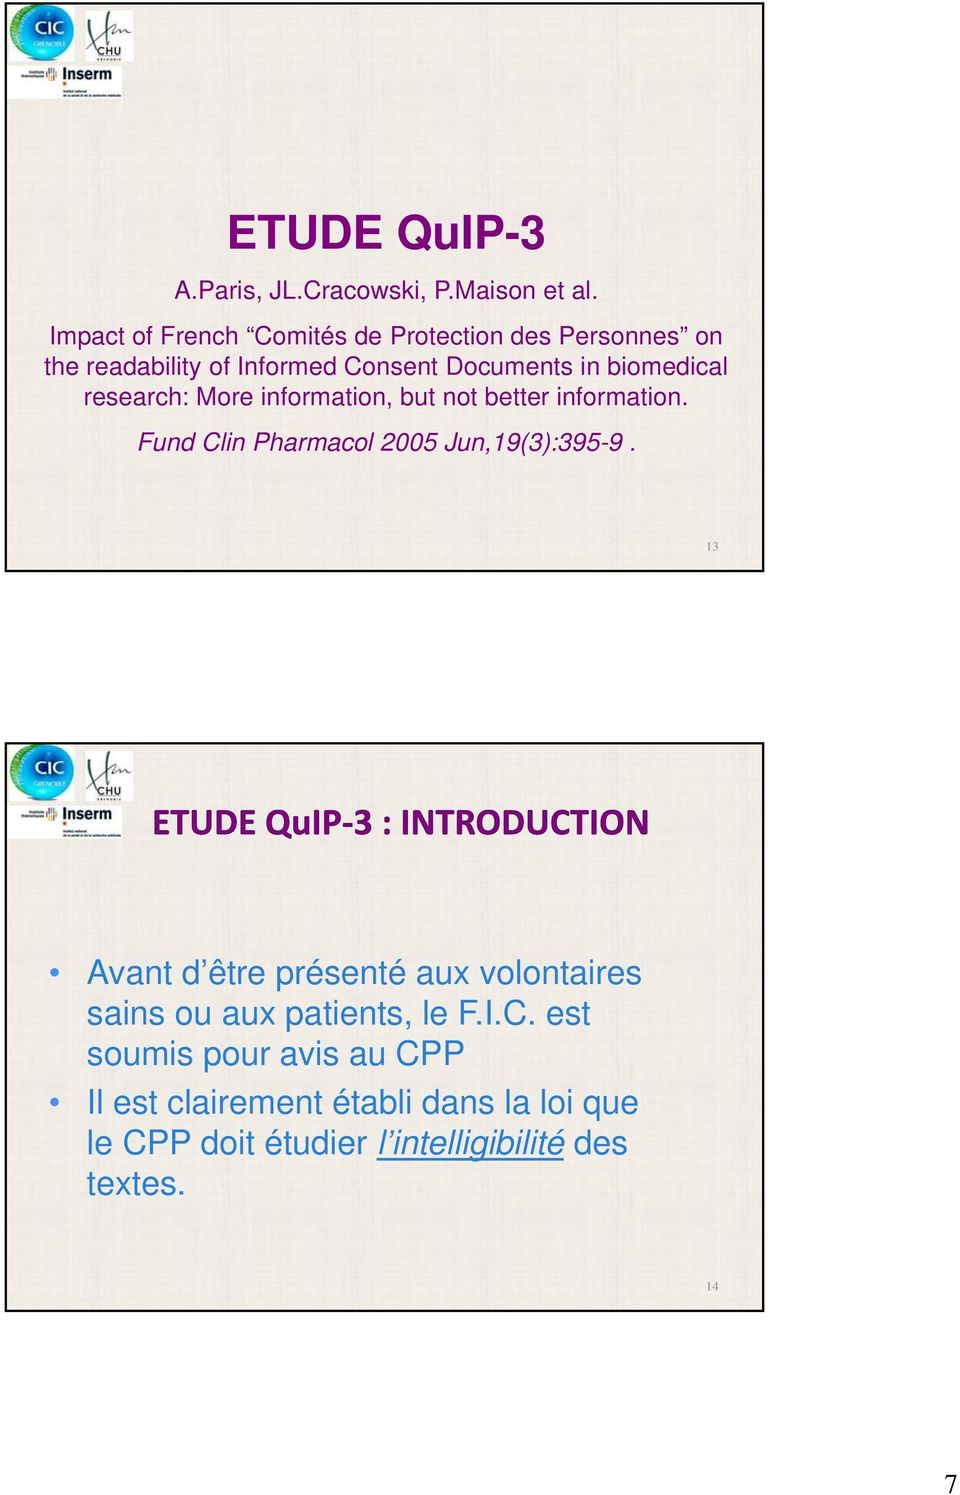 research: More information, but not better information. Fund Clin Pharmacol 2005 Jun,19(3):395-9.